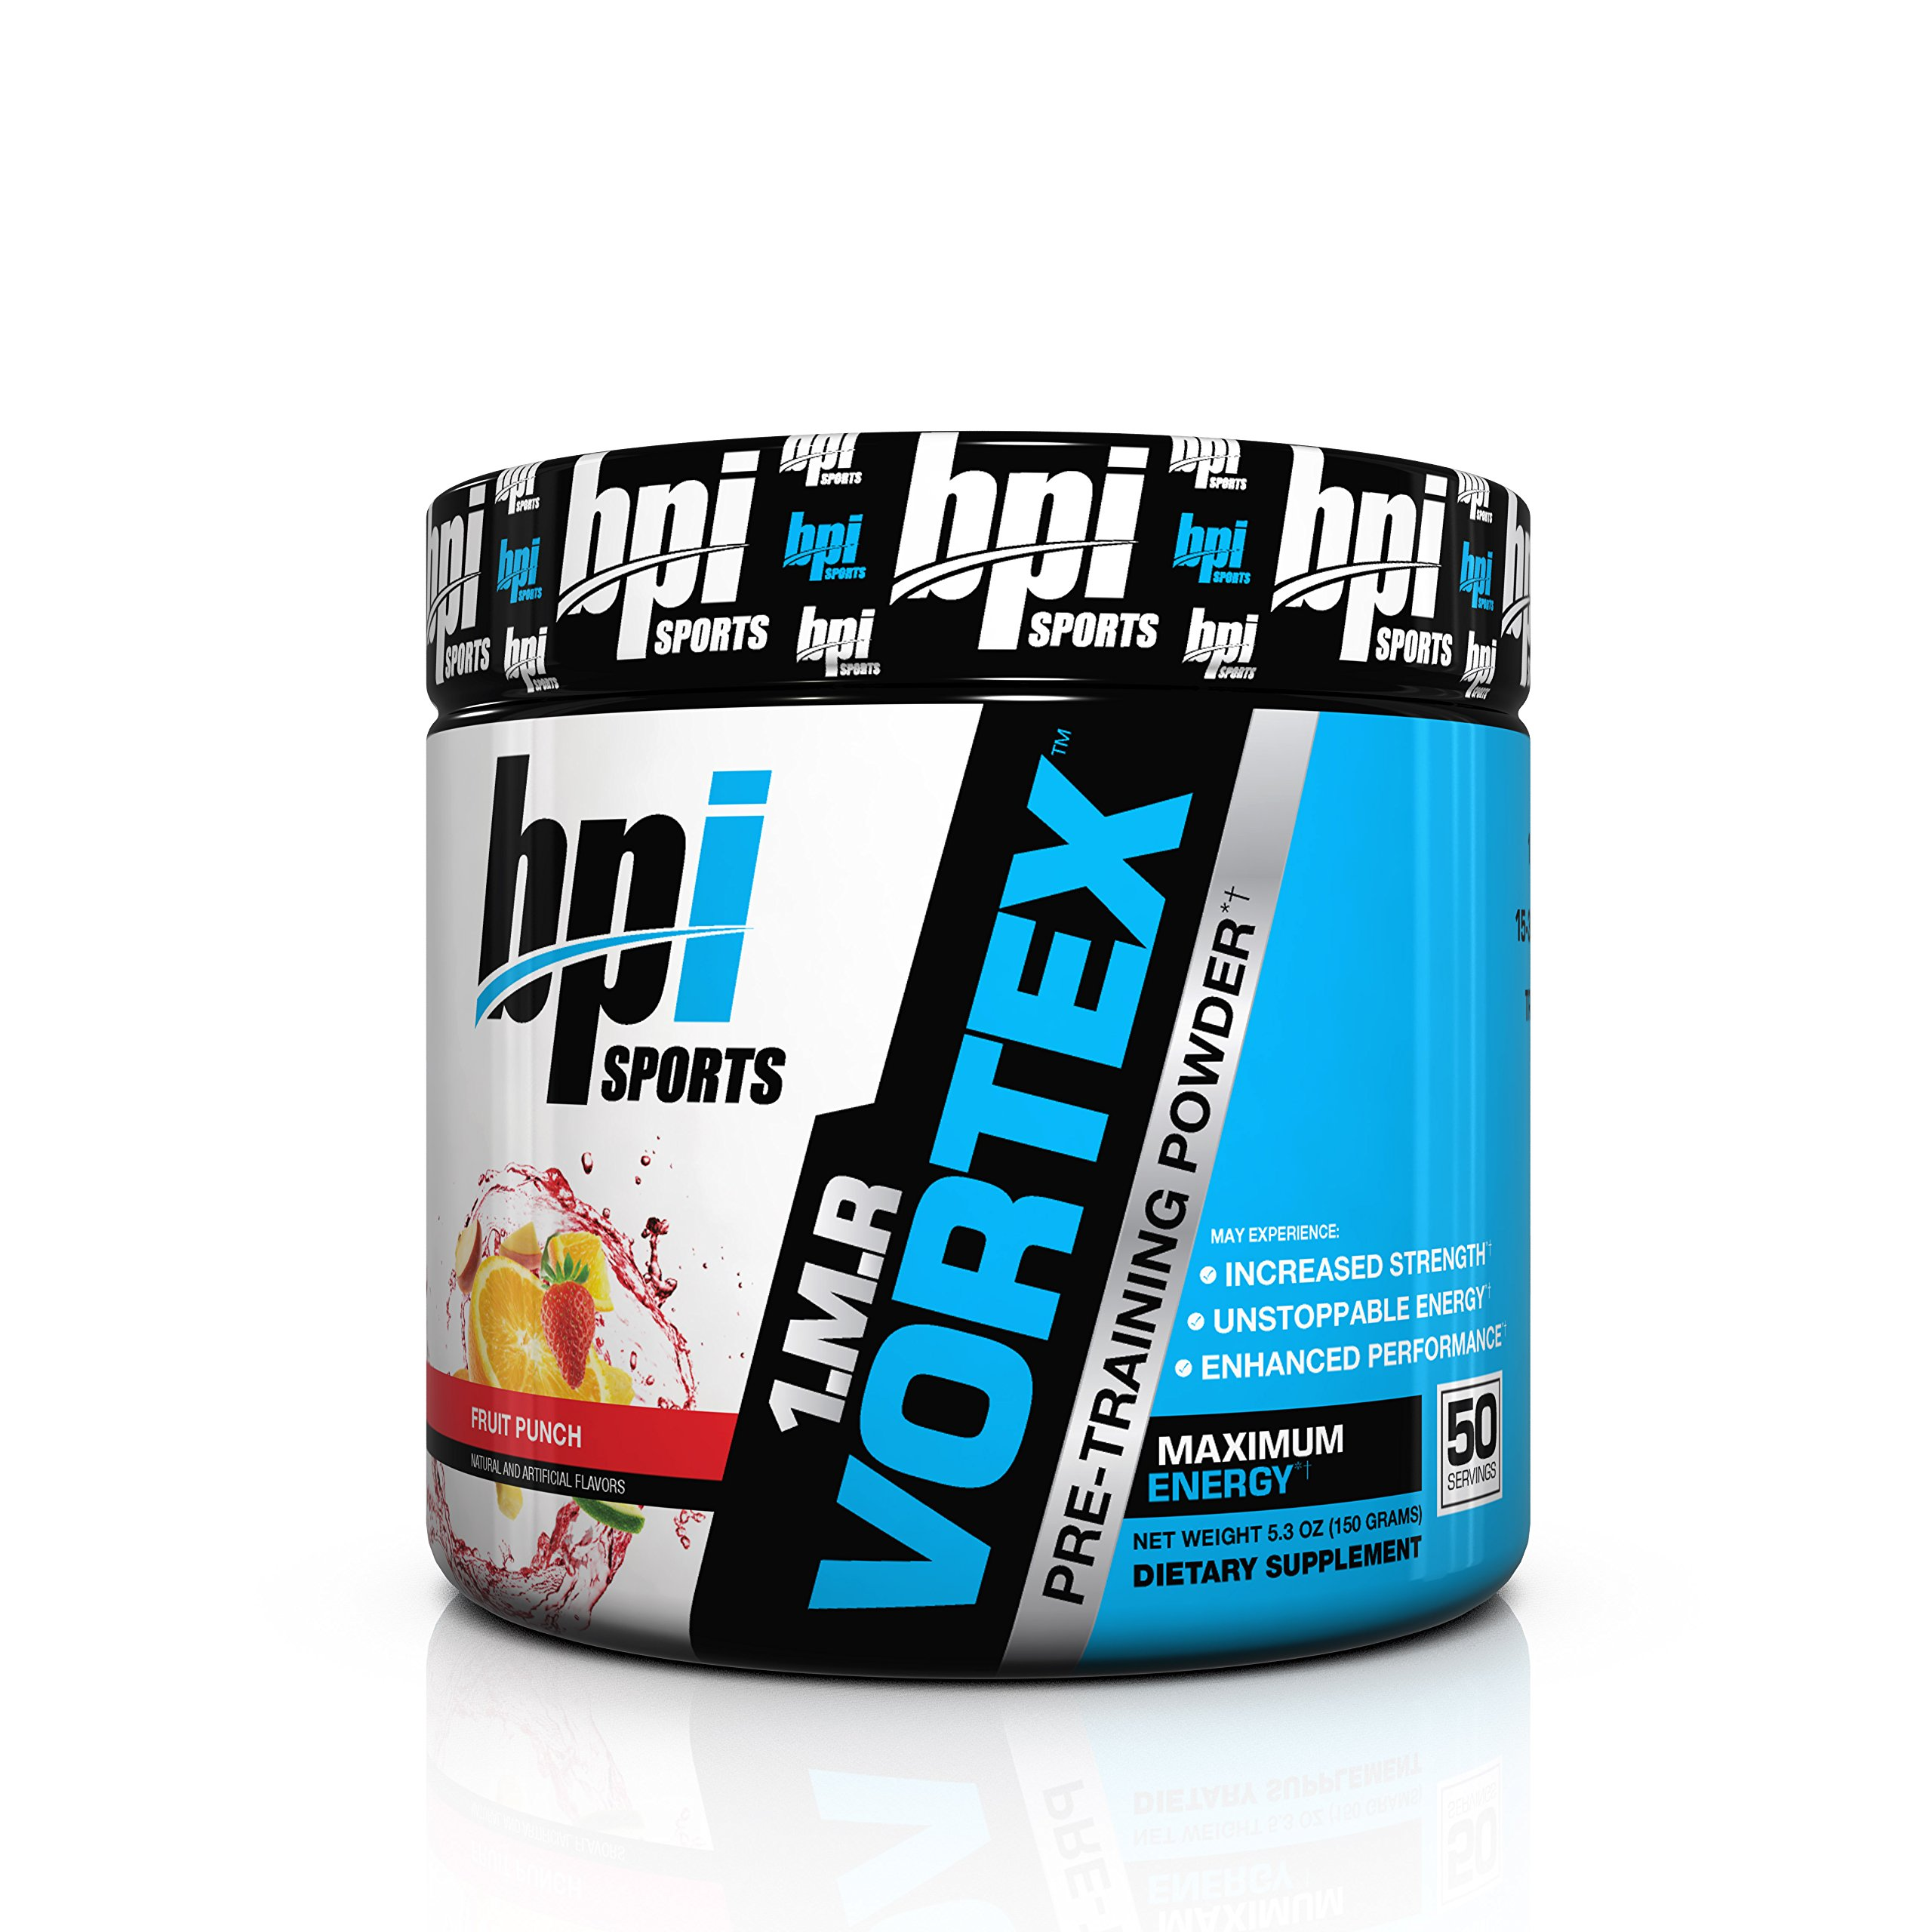 BPI Sports 1.M.R Vortex Pre Workout Powder, Non Habit Forming, Sustained Energy & Nitric Oxide Booster, Fruit Punch, 5.3 Ounce by BPI Sports